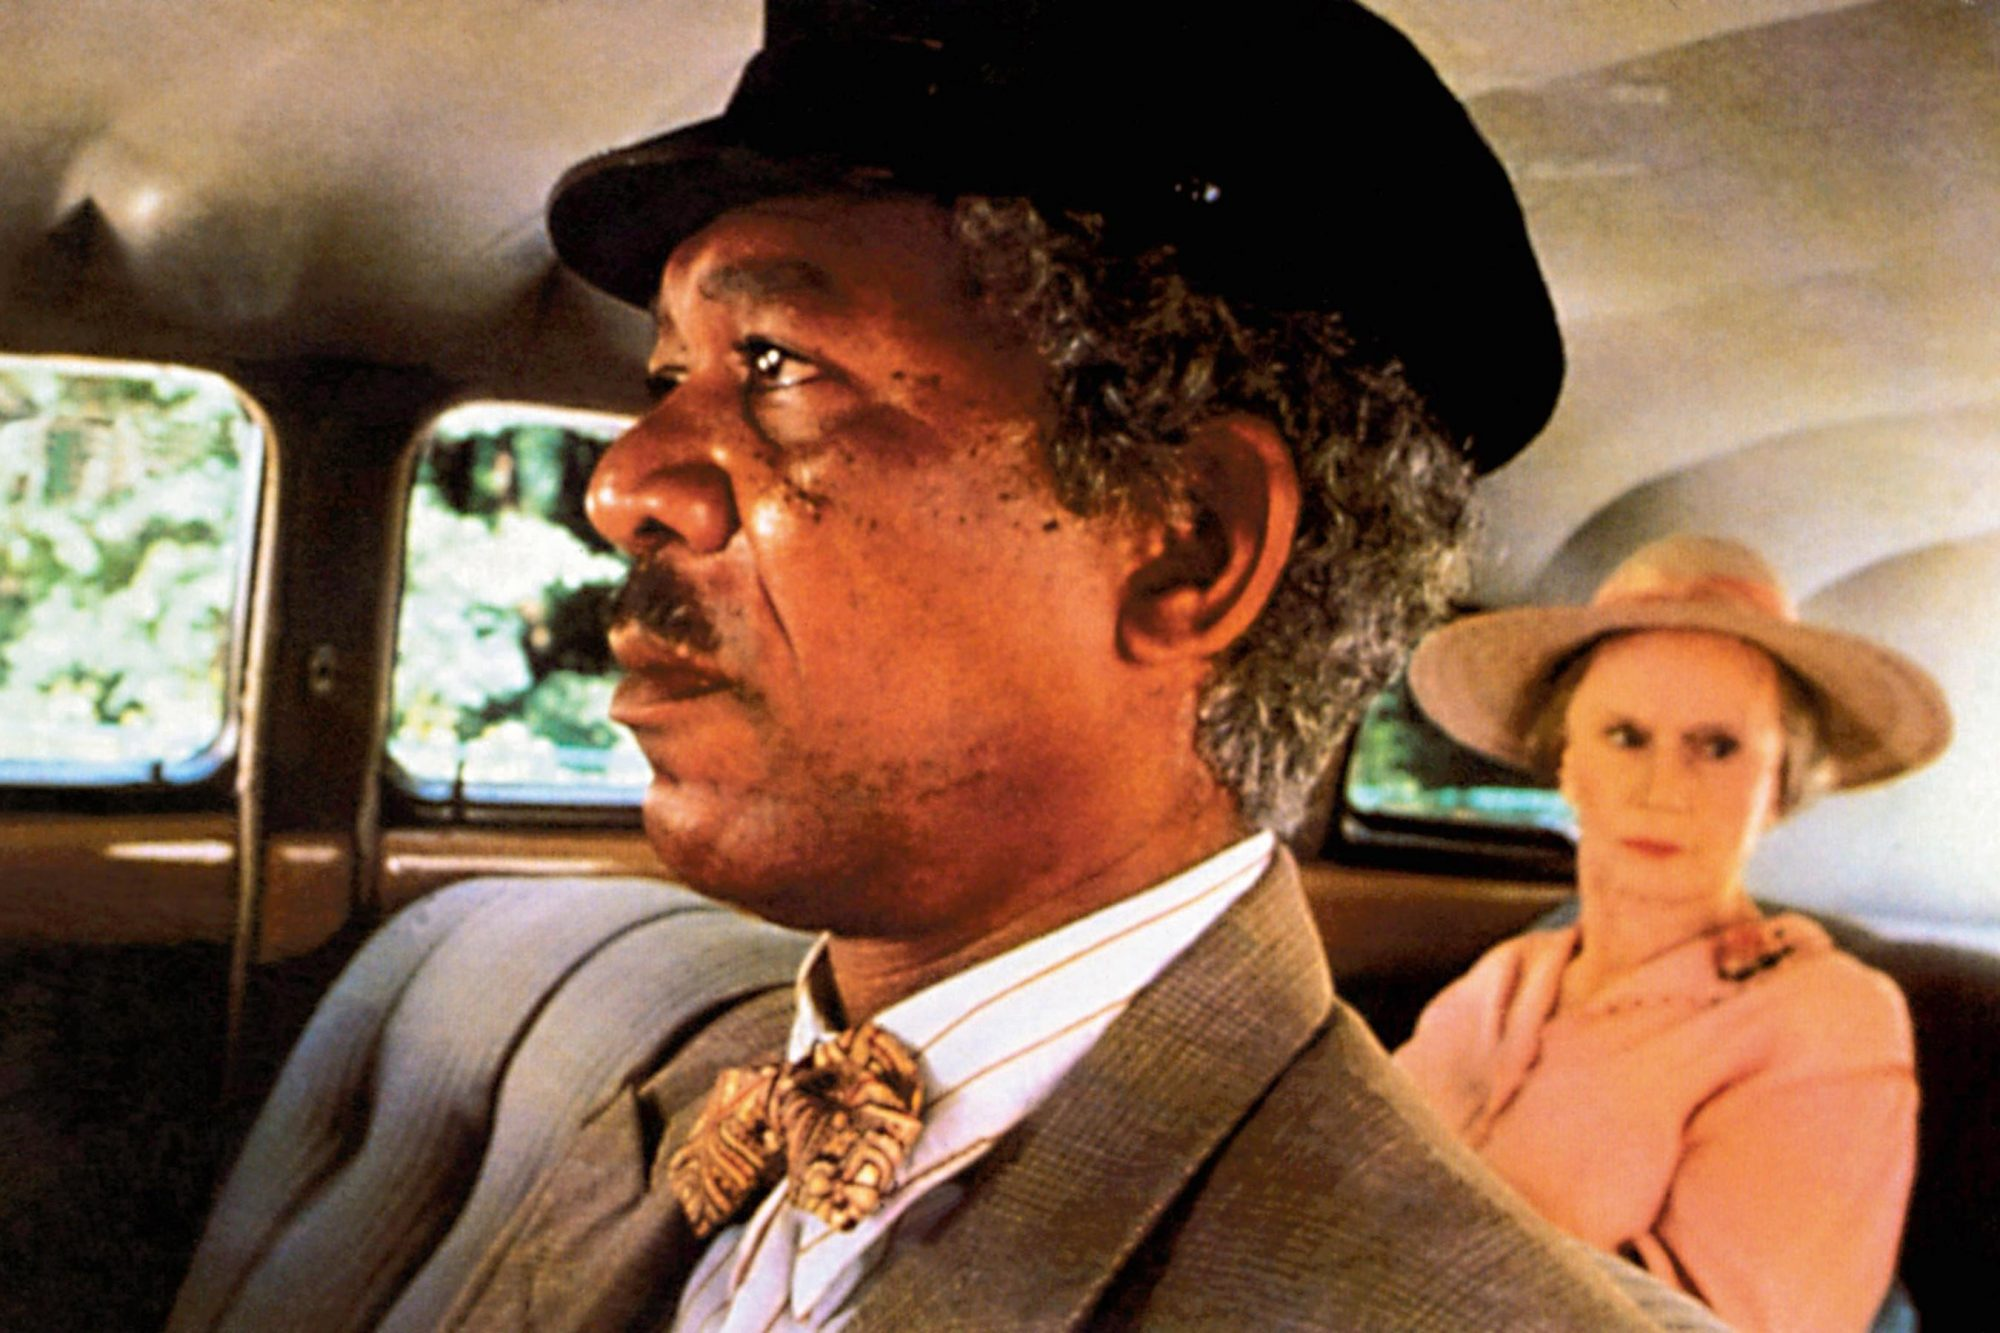 DRIVING MISS DAISY, from left: Morgan Freeman, Jessica Tandy, 1989, © Warner Brothers/courtesy Evere